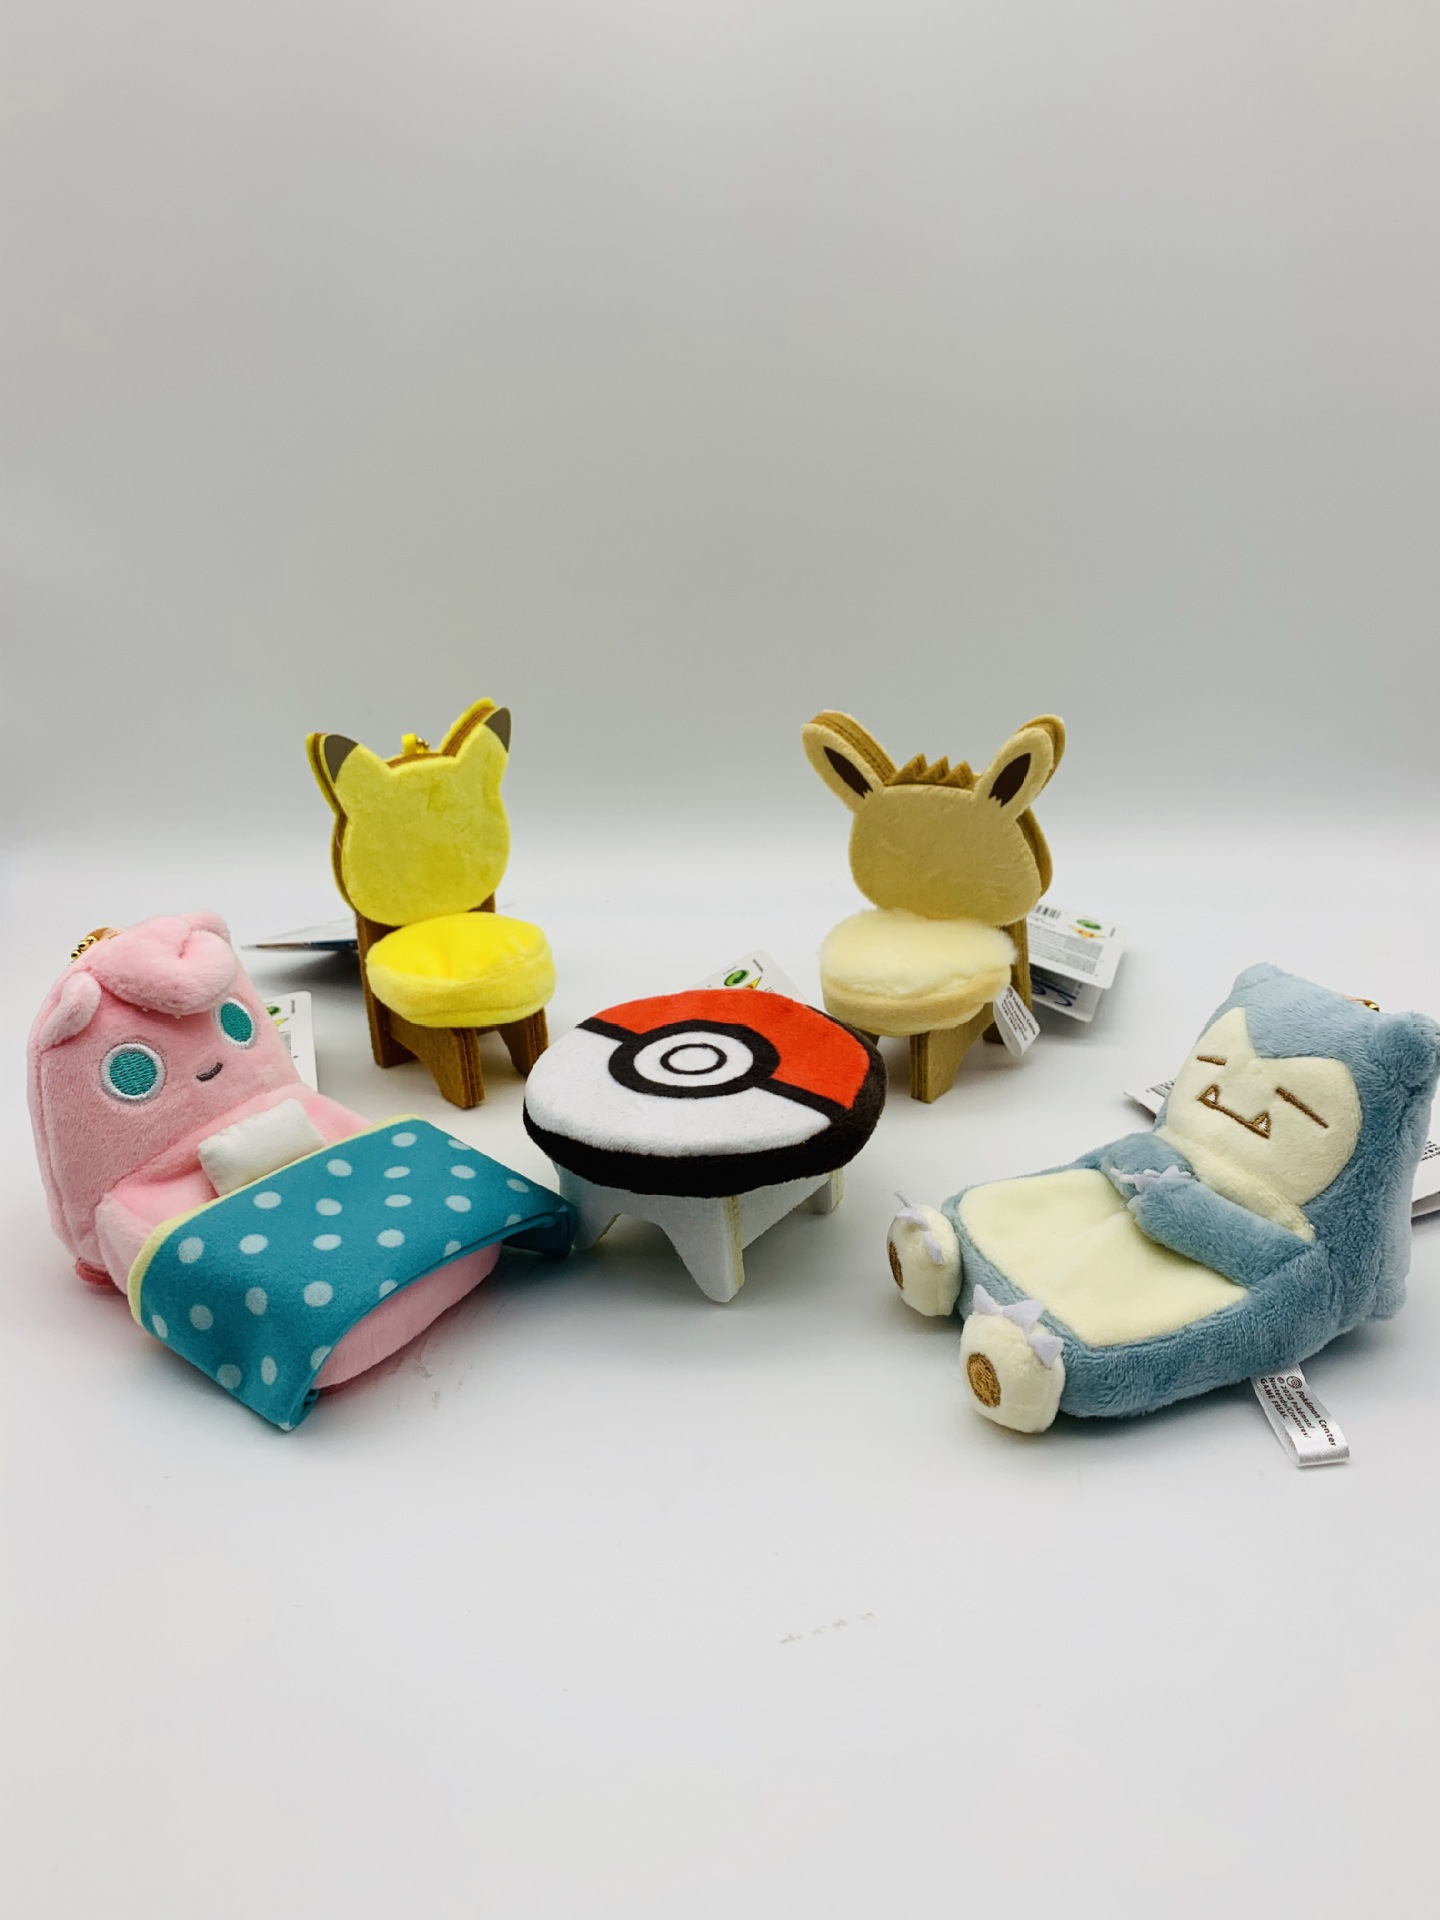 10cm Good Quality Plush MINI Play House Toy Table Chair <font><b>Bed</b></font> Eevee Jigglypuff Snorlax Ball Doll image